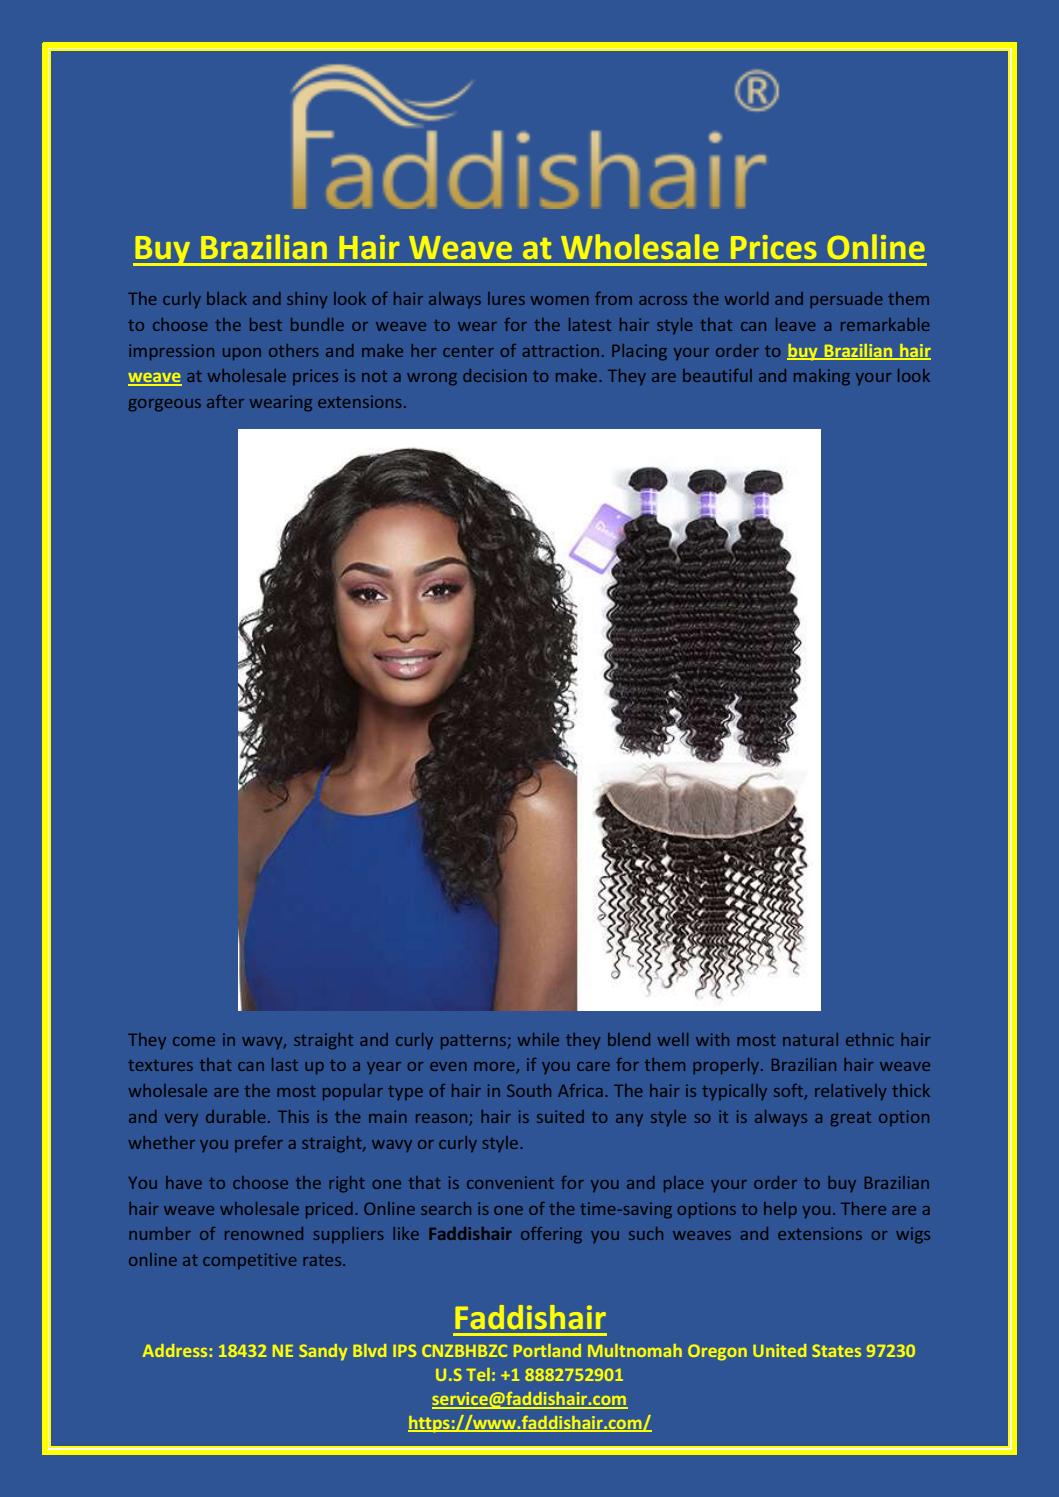 Buy Brazilian Hair Weave At Wholesale Prices Online By Faddis Hair